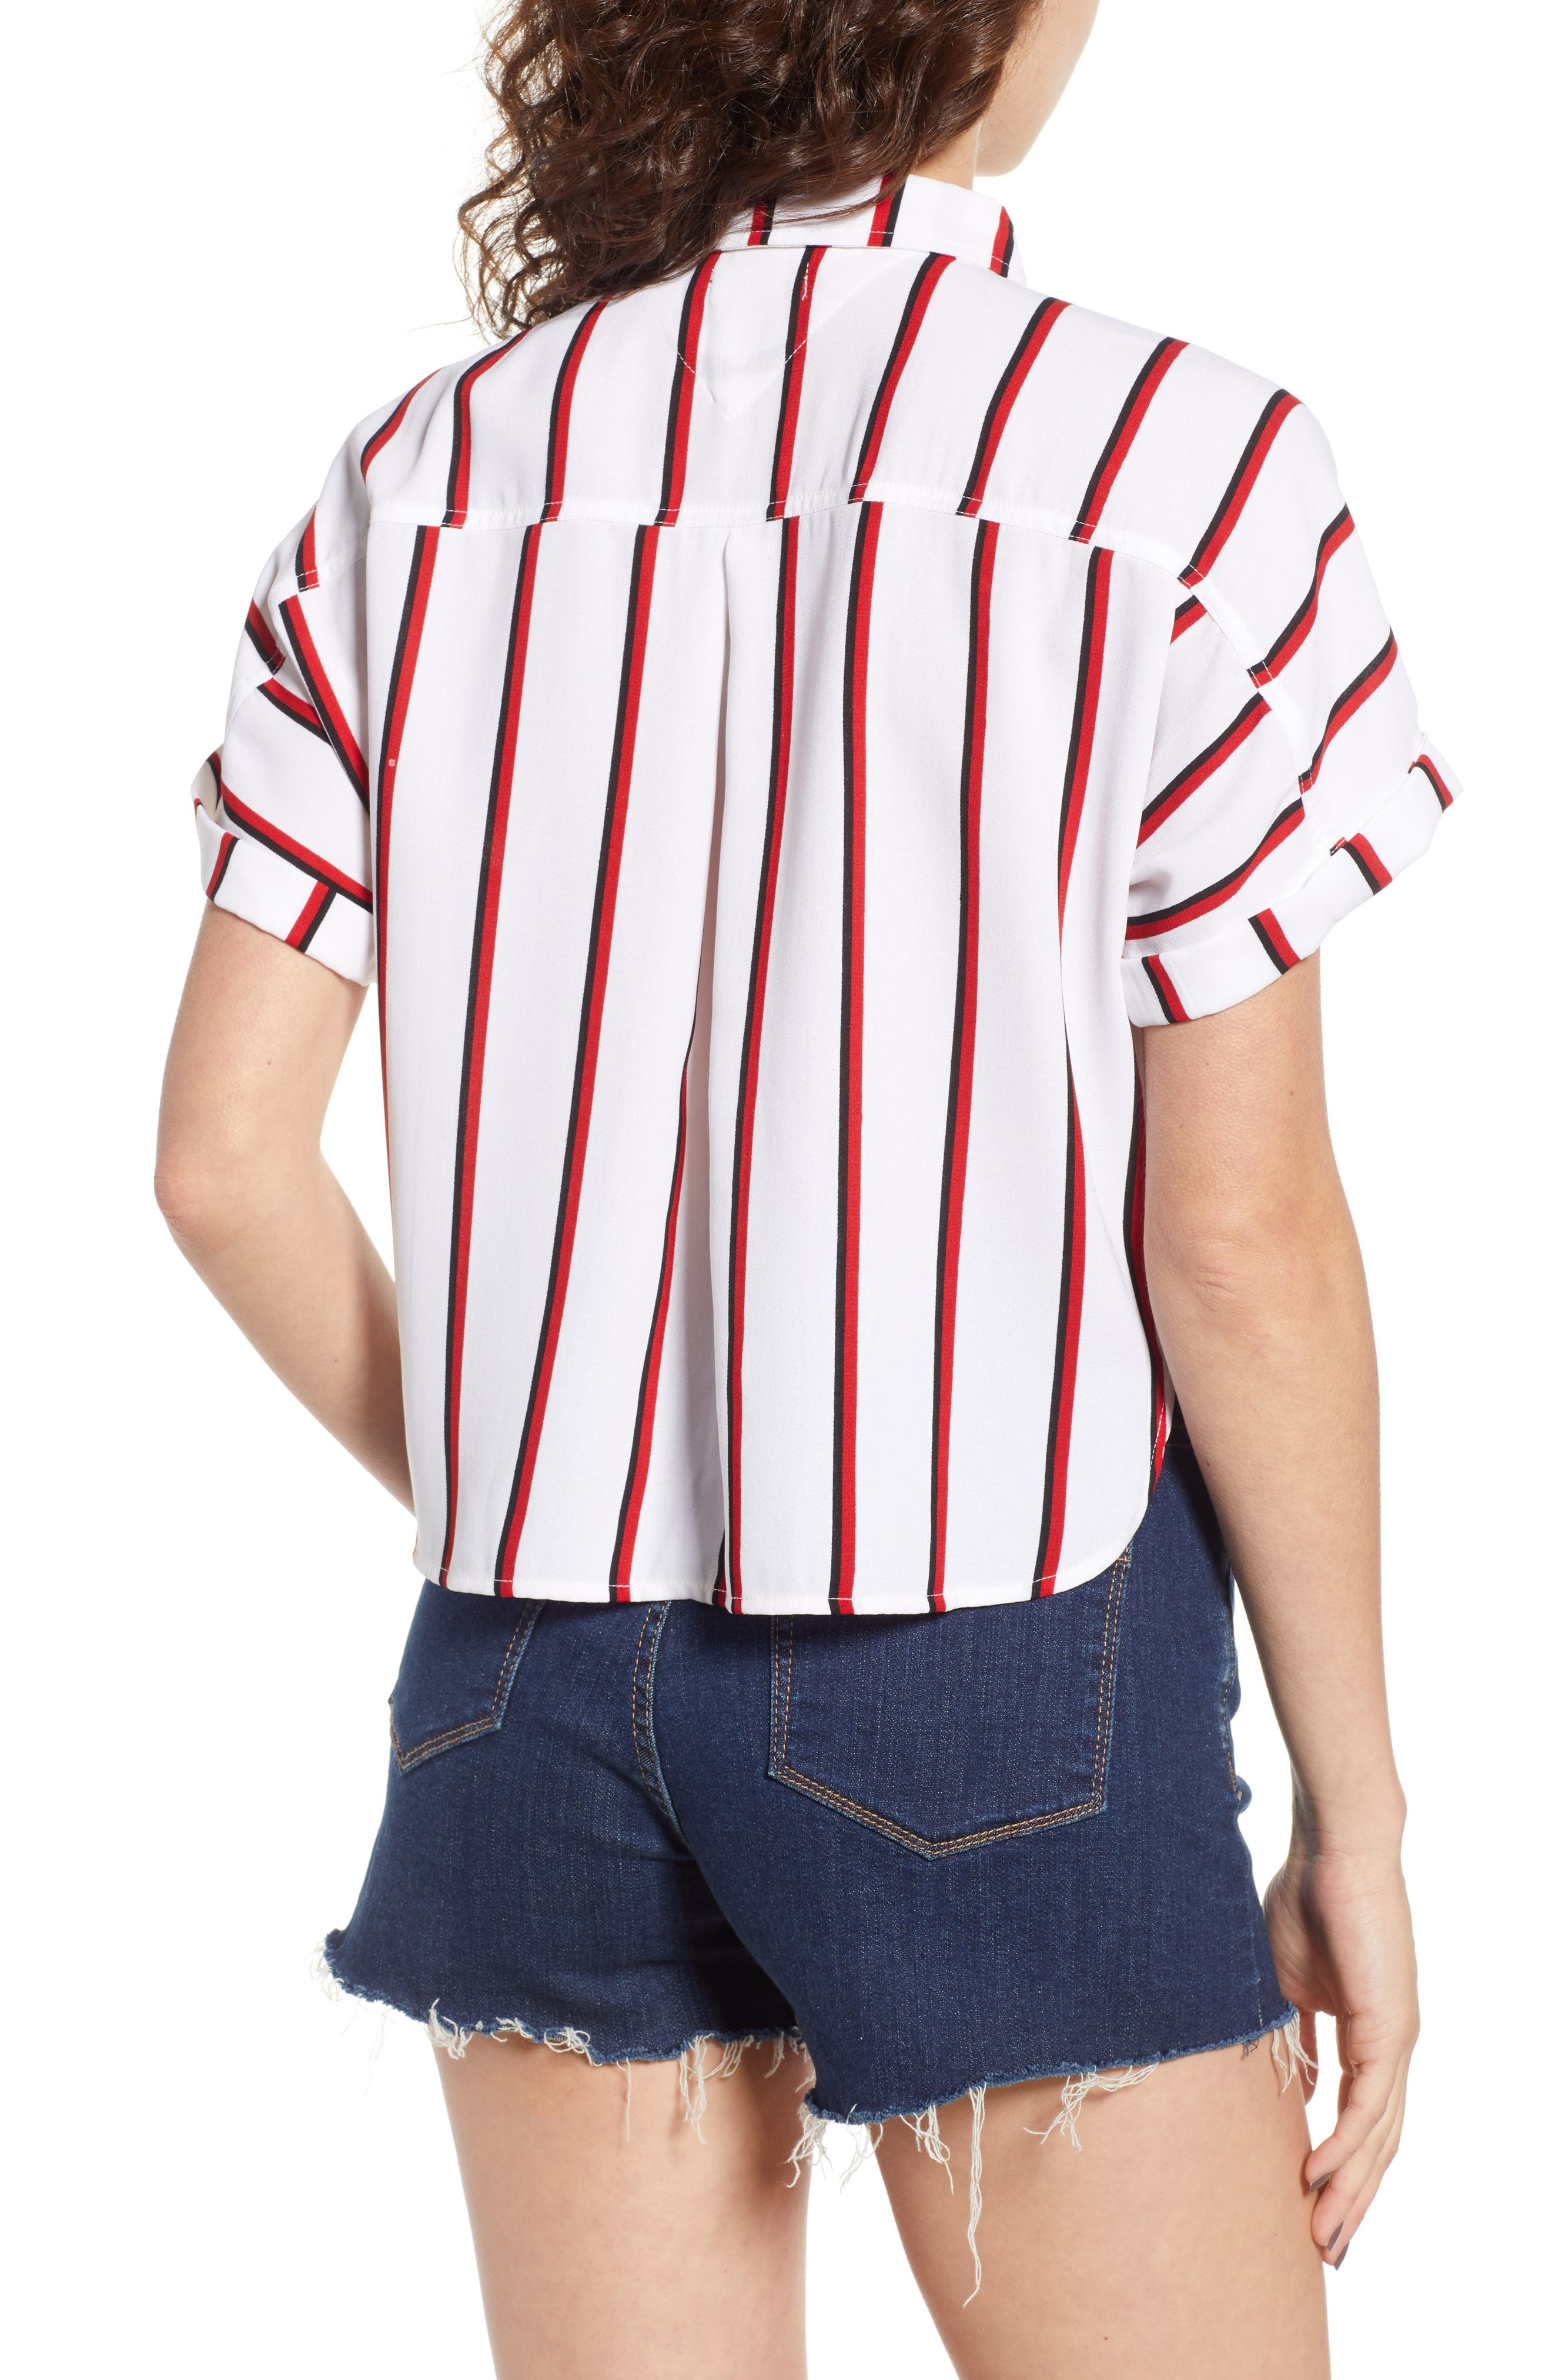 Counting Moons Stripe Top,                             Alternate thumbnail 2, color,                             Chili Red